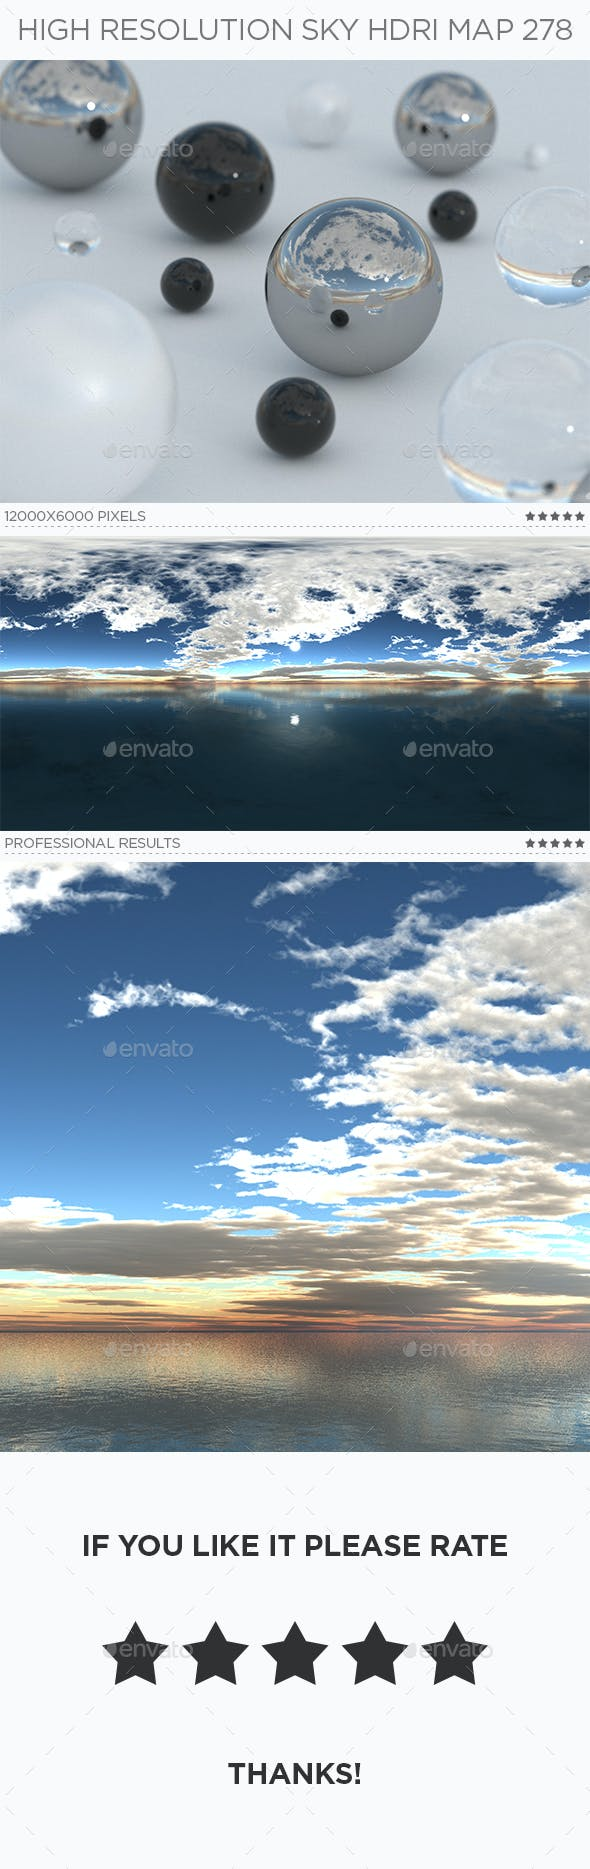 High Resolution Sky HDRi Map 278 - 3DOcean Item for Sale